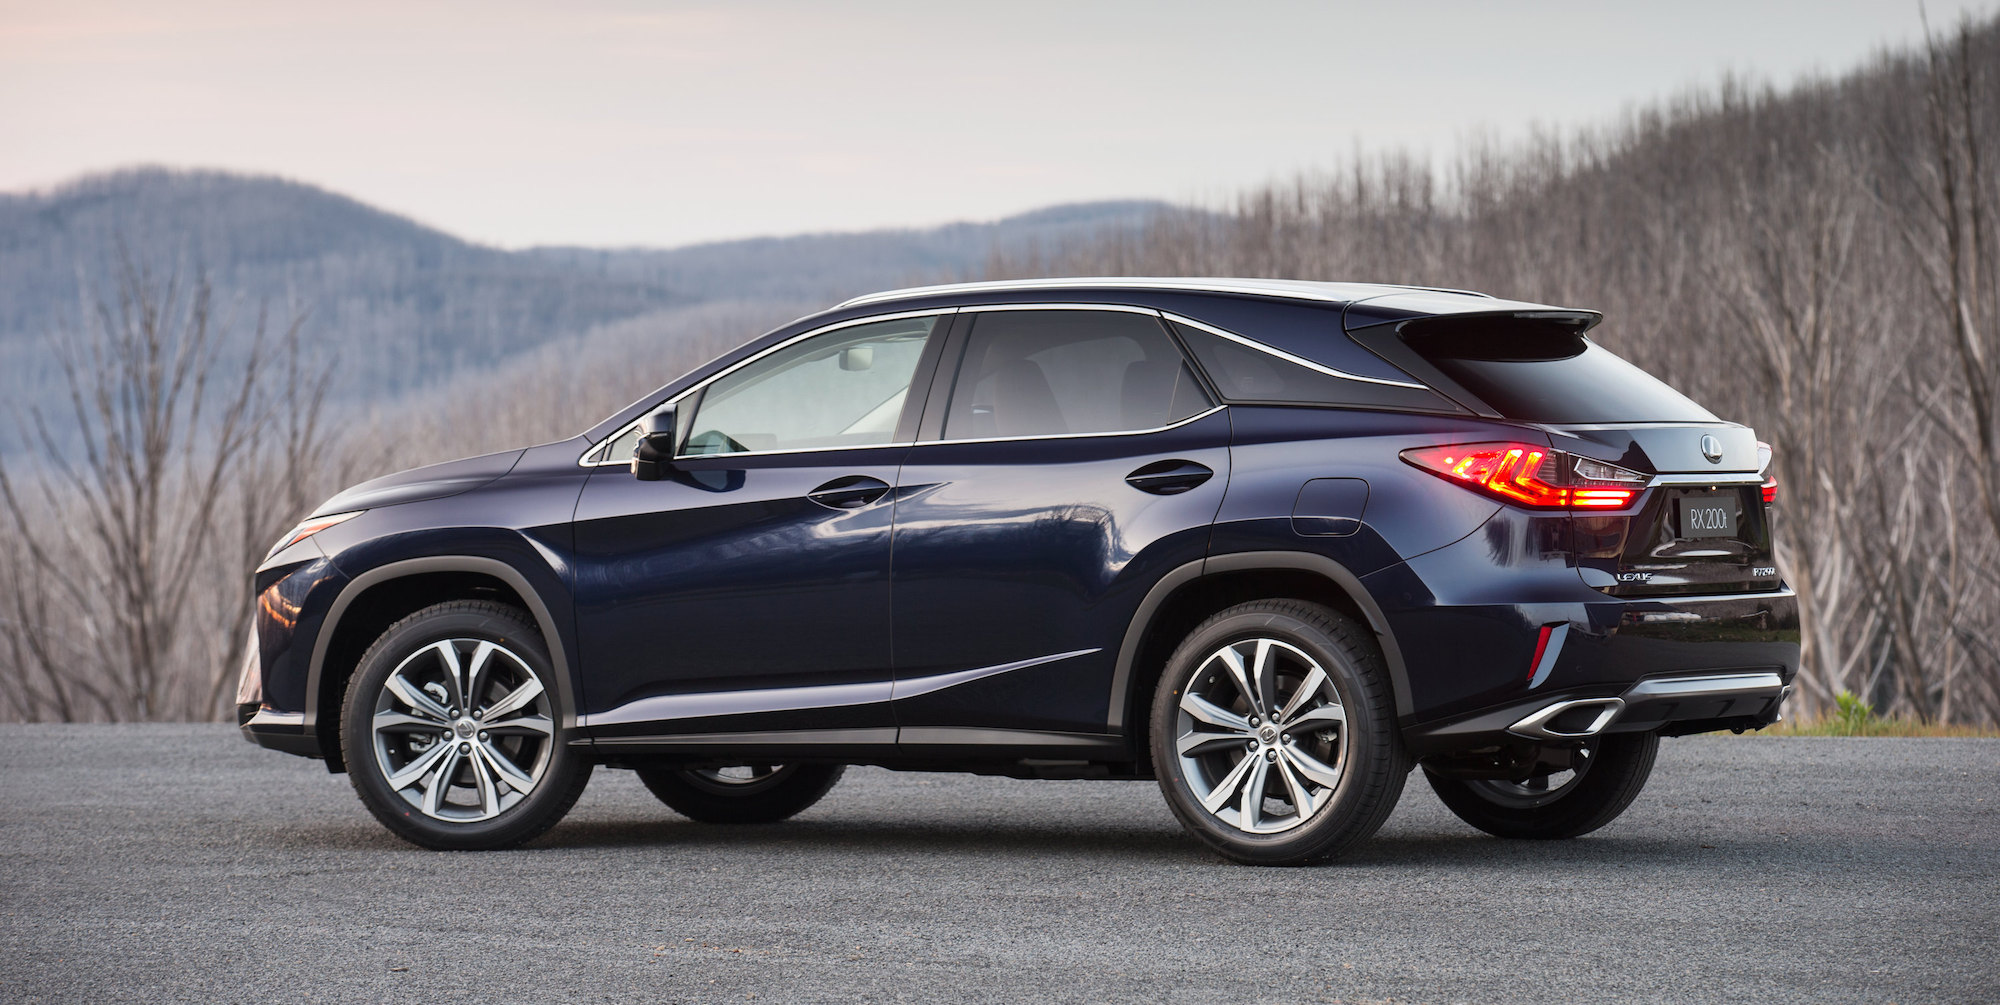 2016 lexus rx300 | car photos catalog 2017